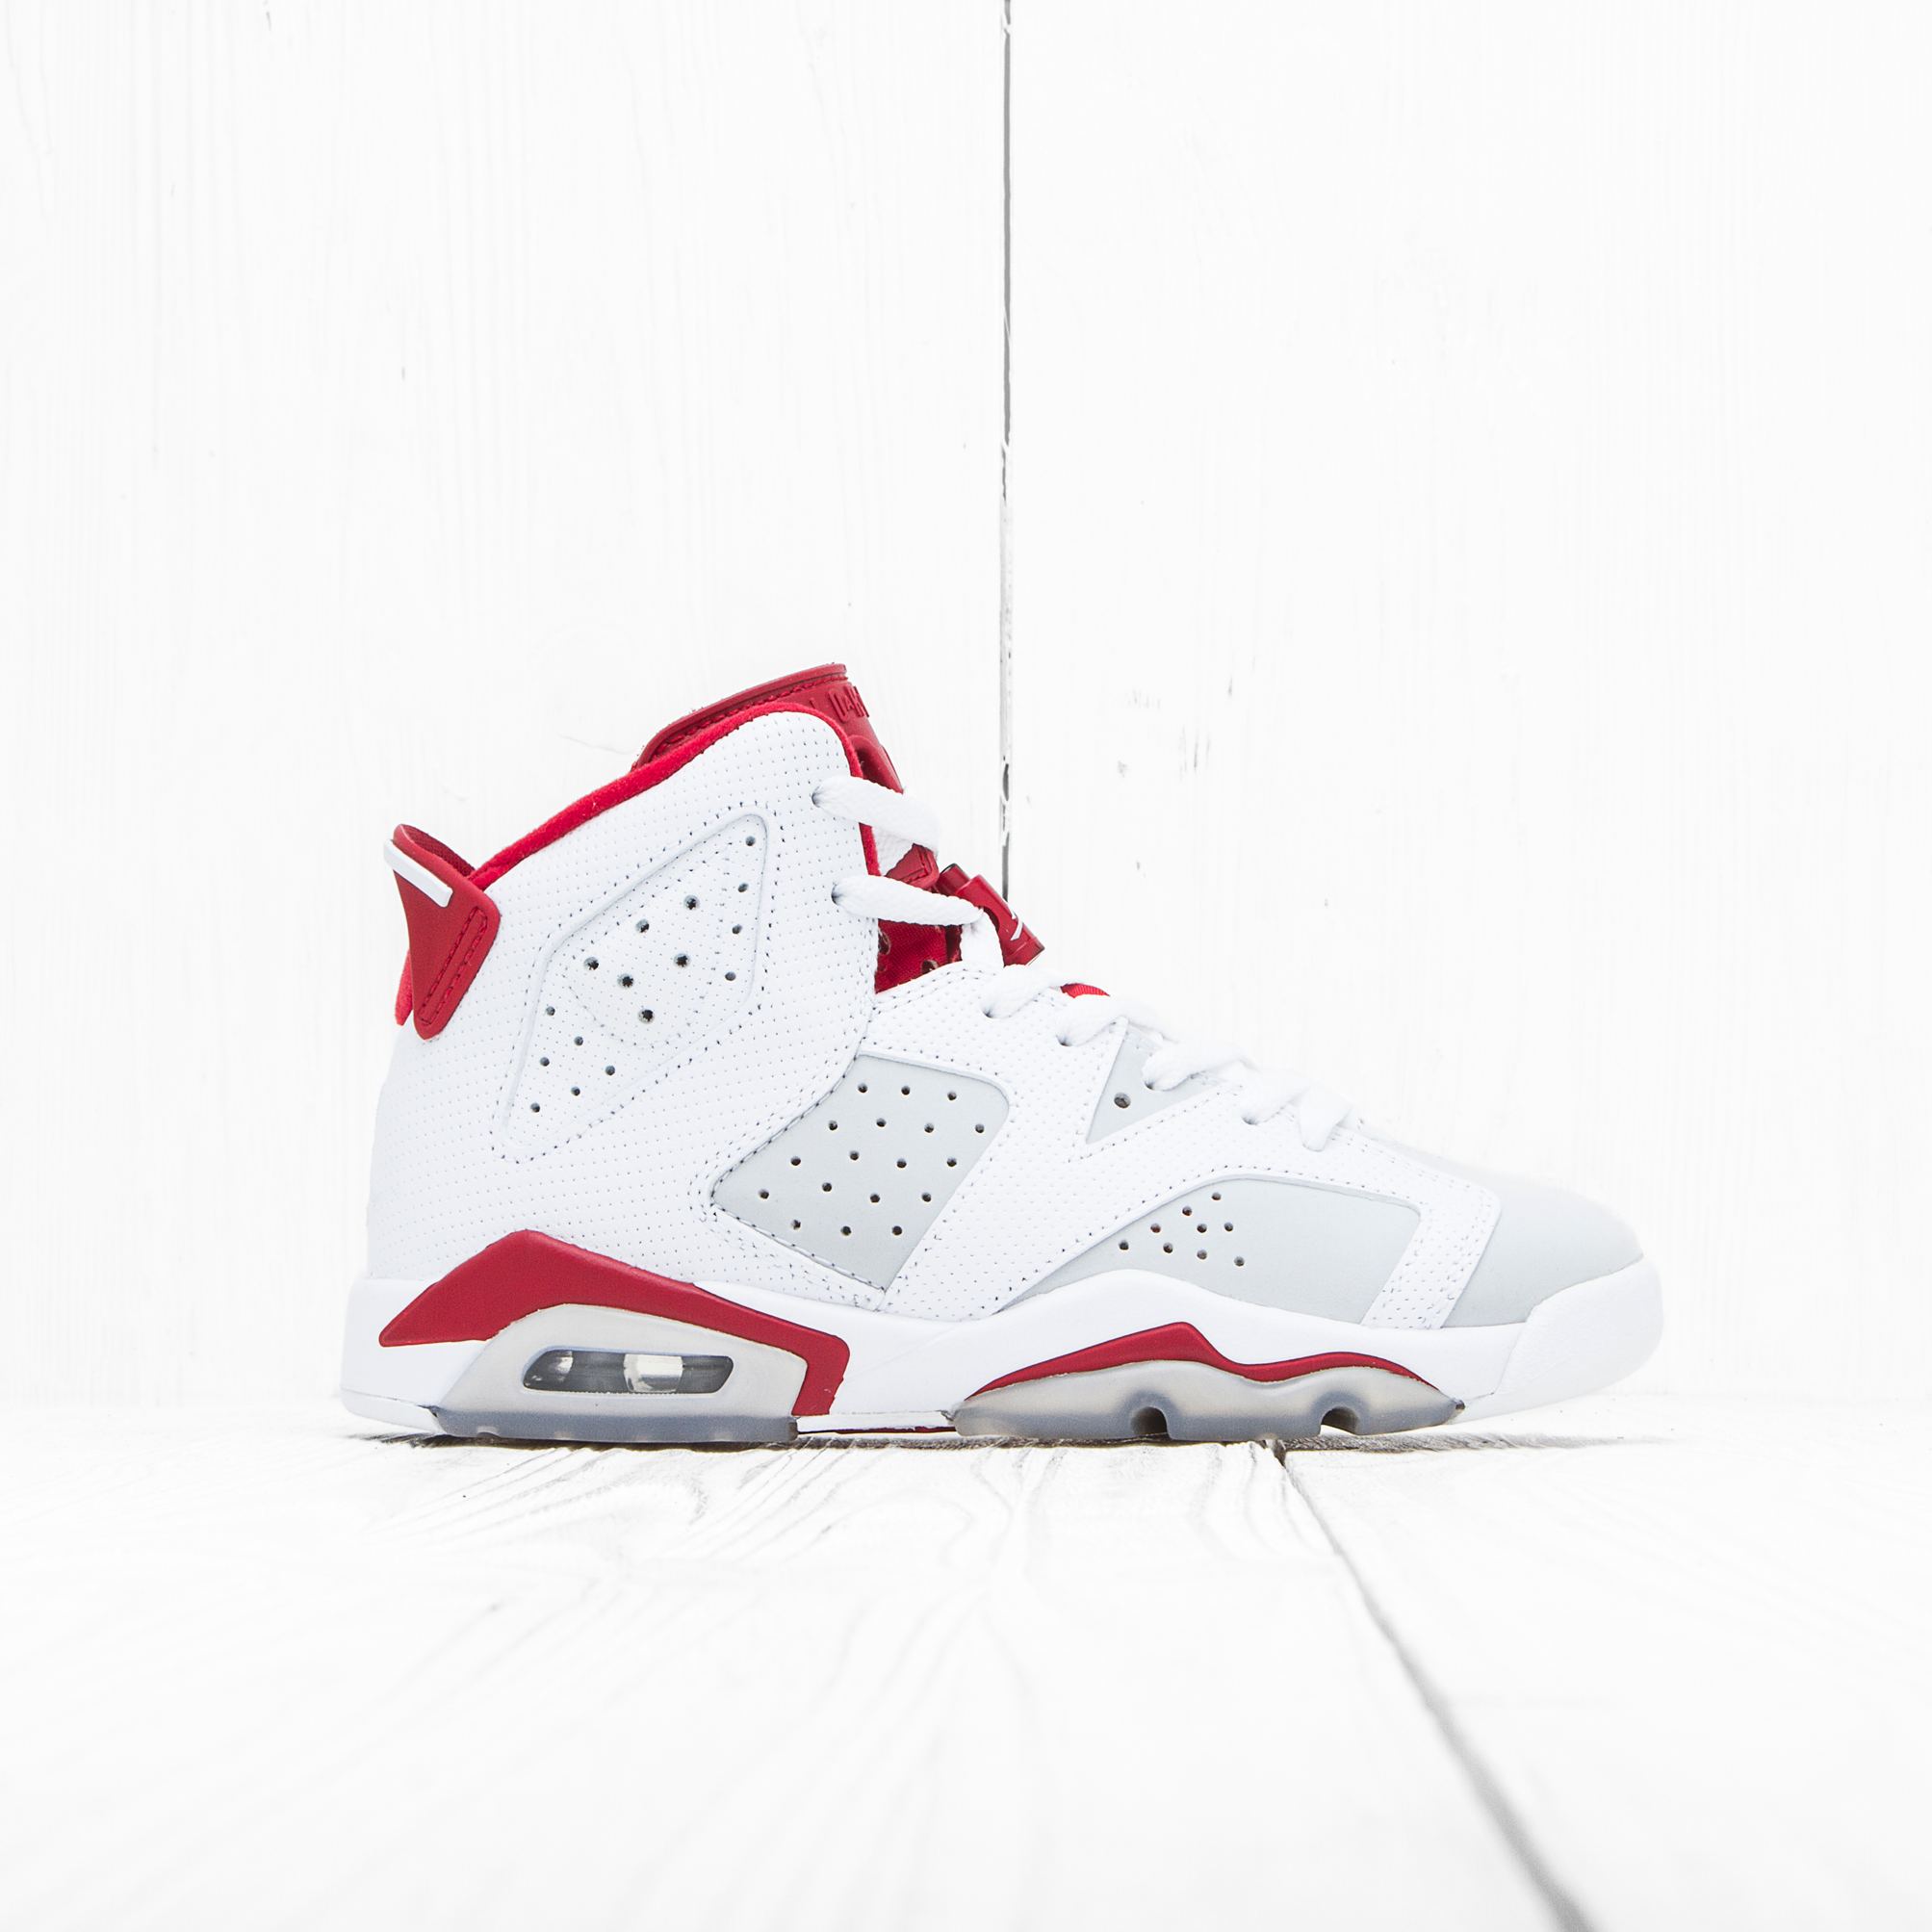 Кроссовки Jordan AIR JORDAN 6 RETRO (BG) White/Pure Platinum-Gym Red